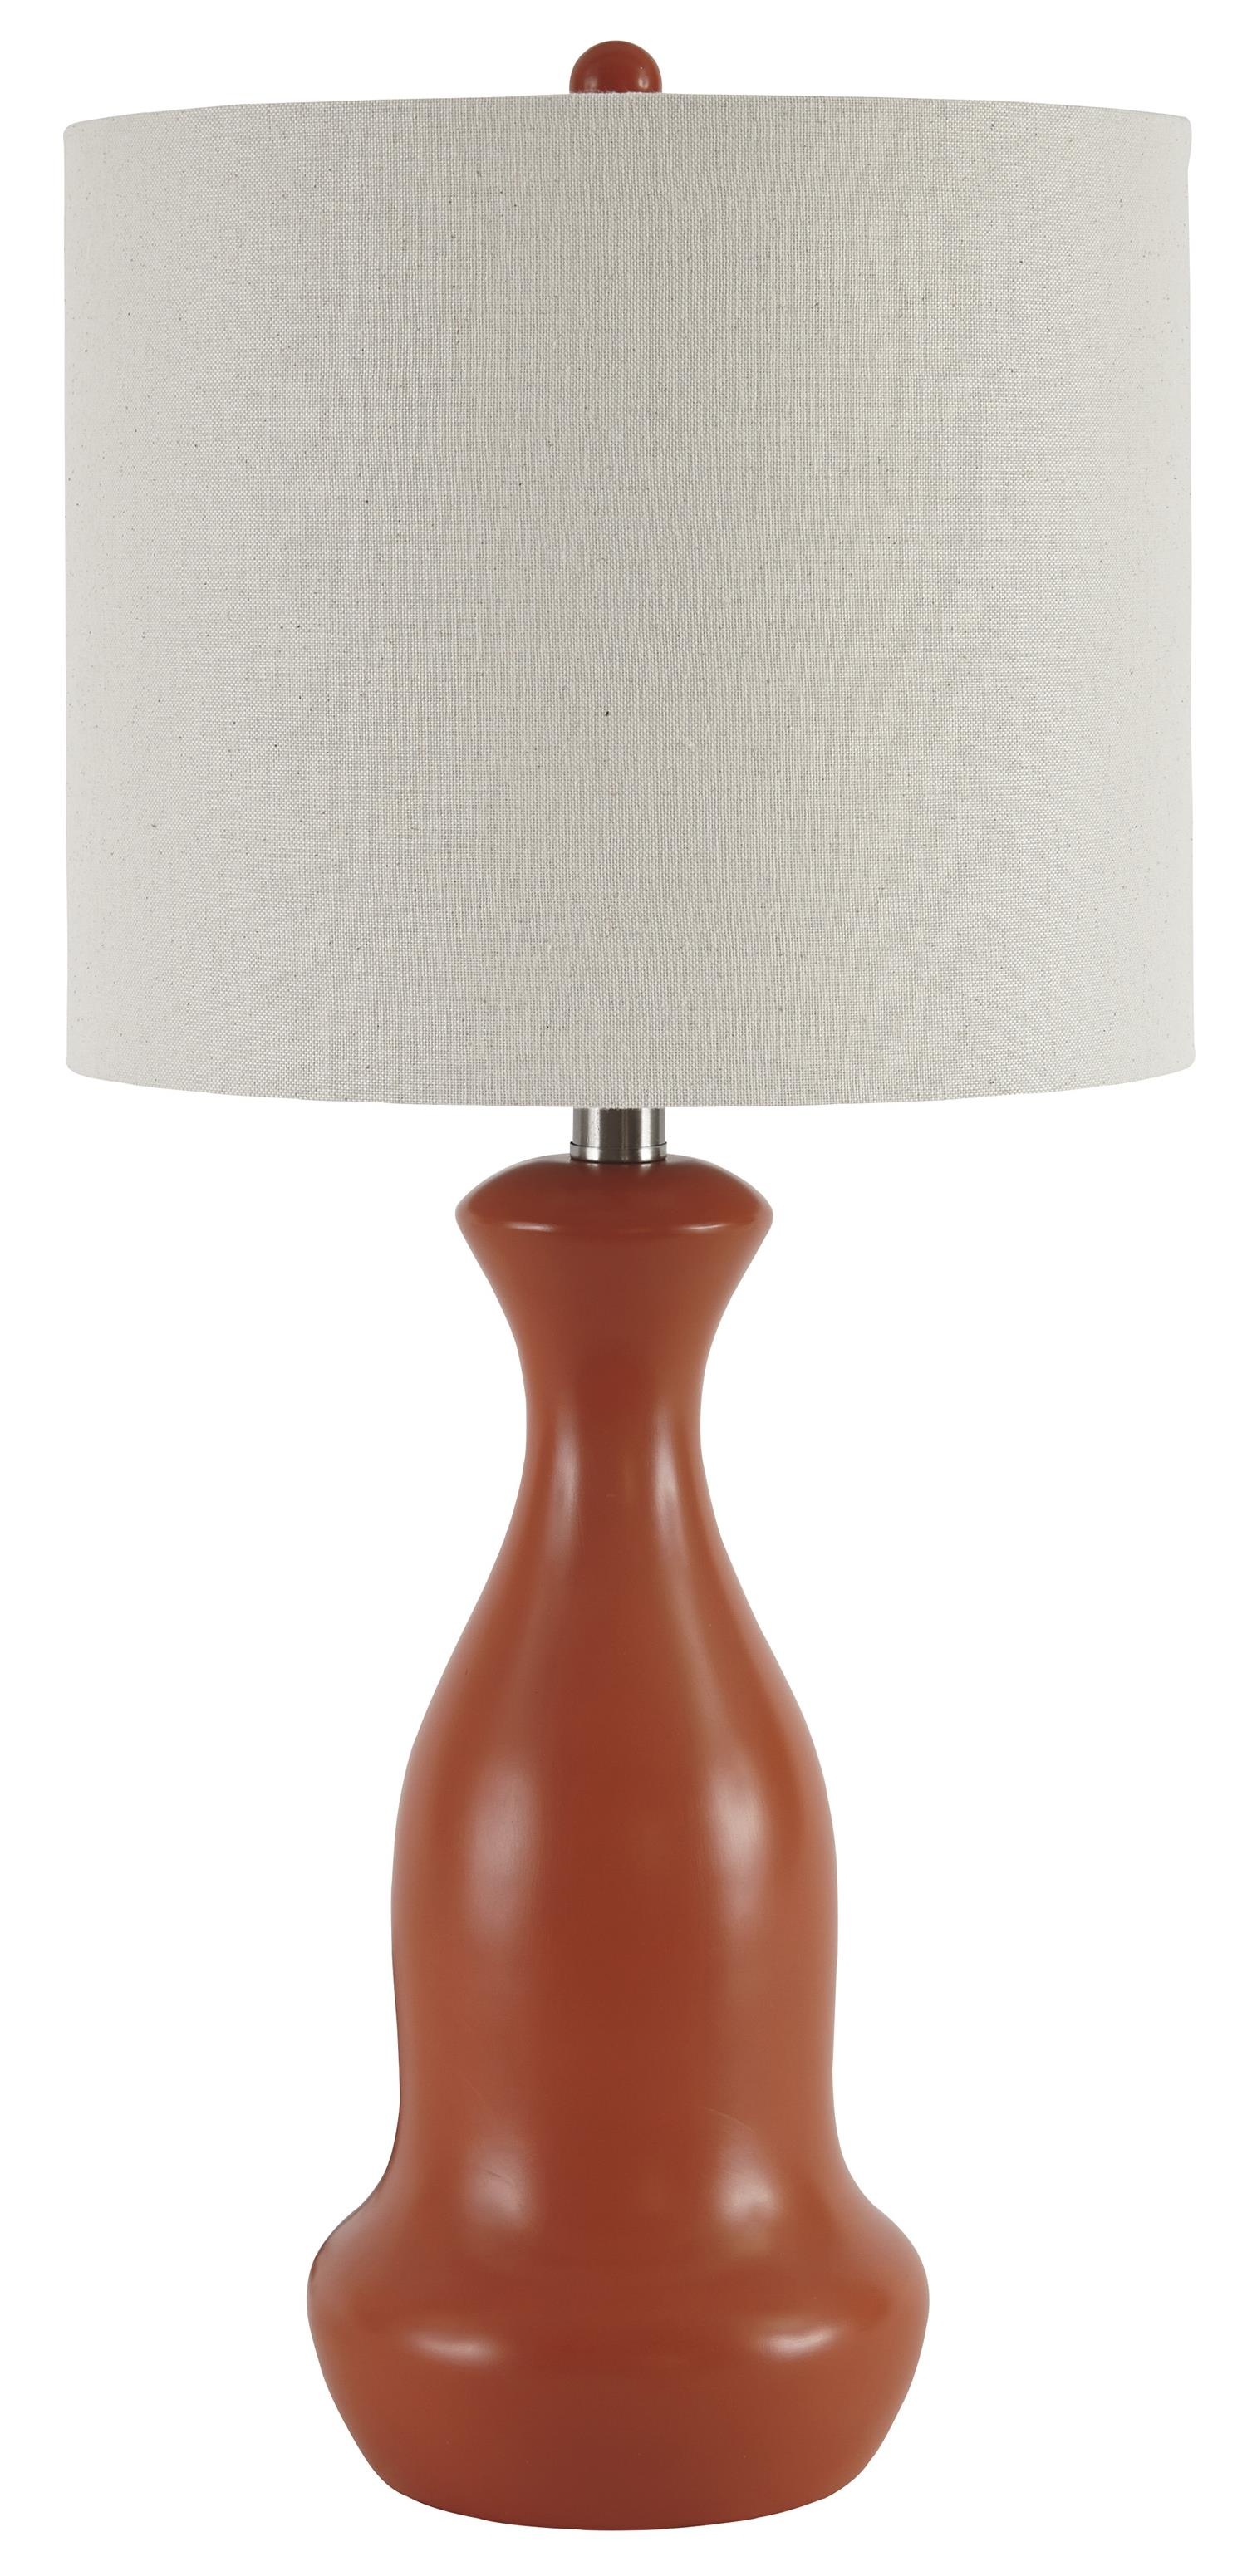 Signature Design by Ashley Lamps - Contemporary Set of 2 Stellina Poly Table Lamps - Item Number: L243094